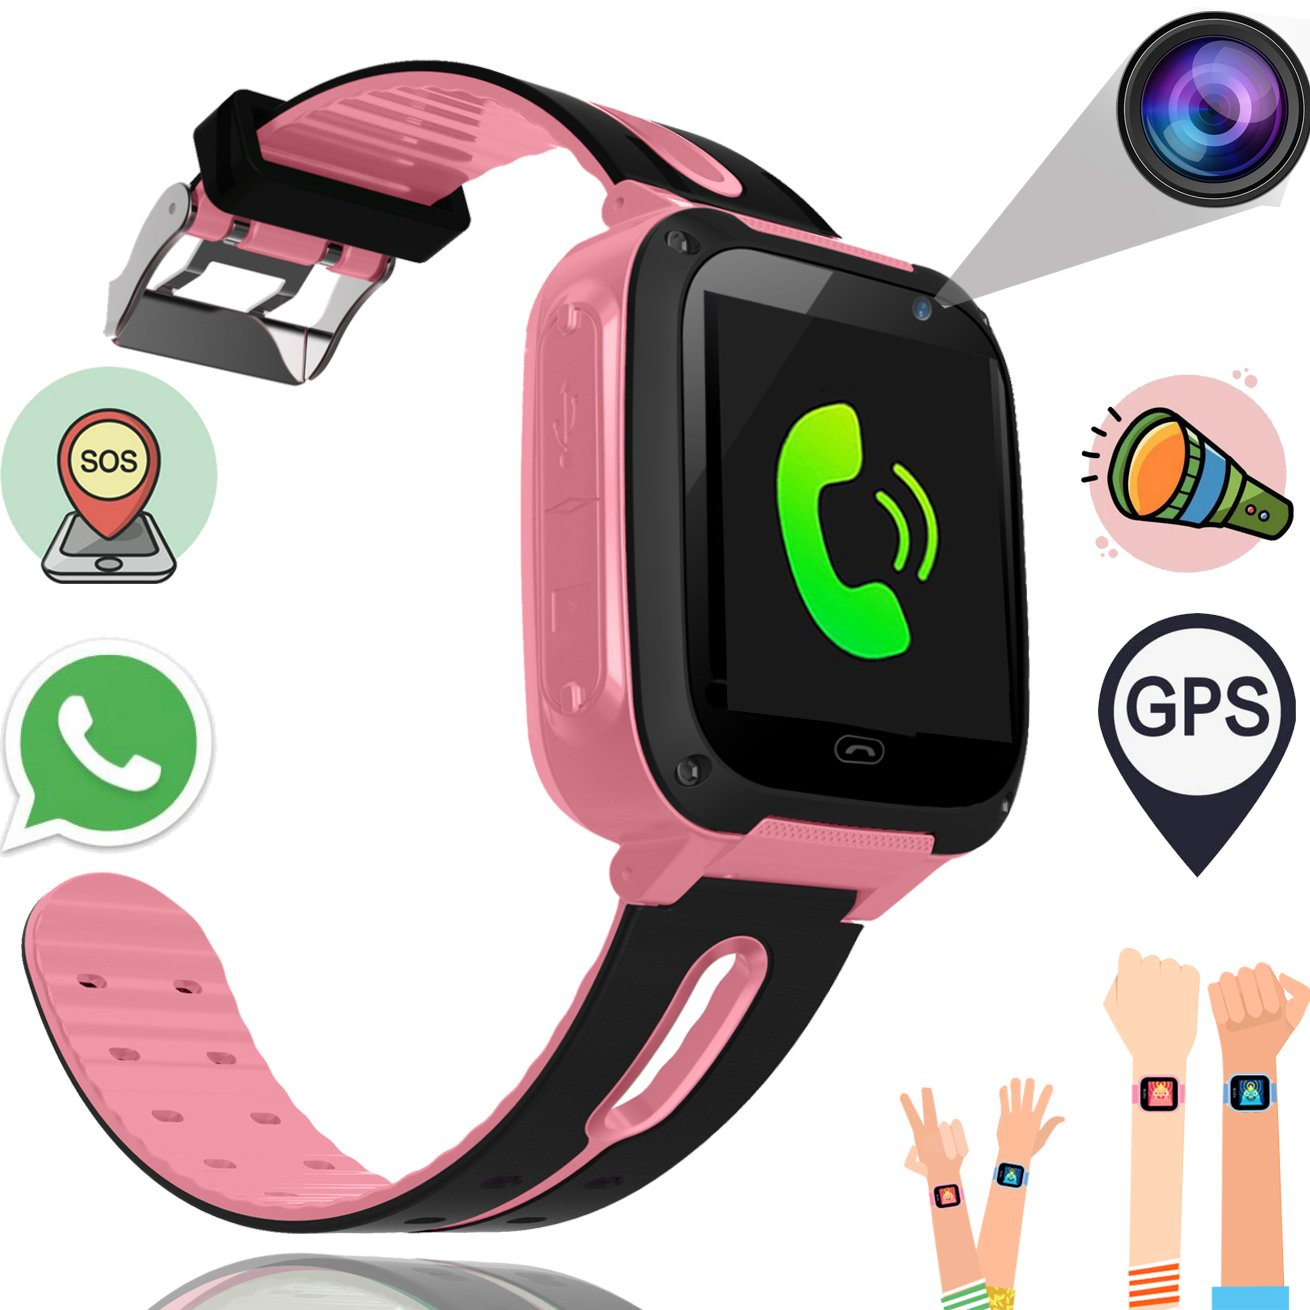 Smart Watch for Kids GPS Tracker Best Phone Watch Birthday Toys Gifts for Boys Girls 3-14 Years With Camera SOS Parents Remote App for iPhone Android Smartphone for Children Electronic Learni (S4pink)